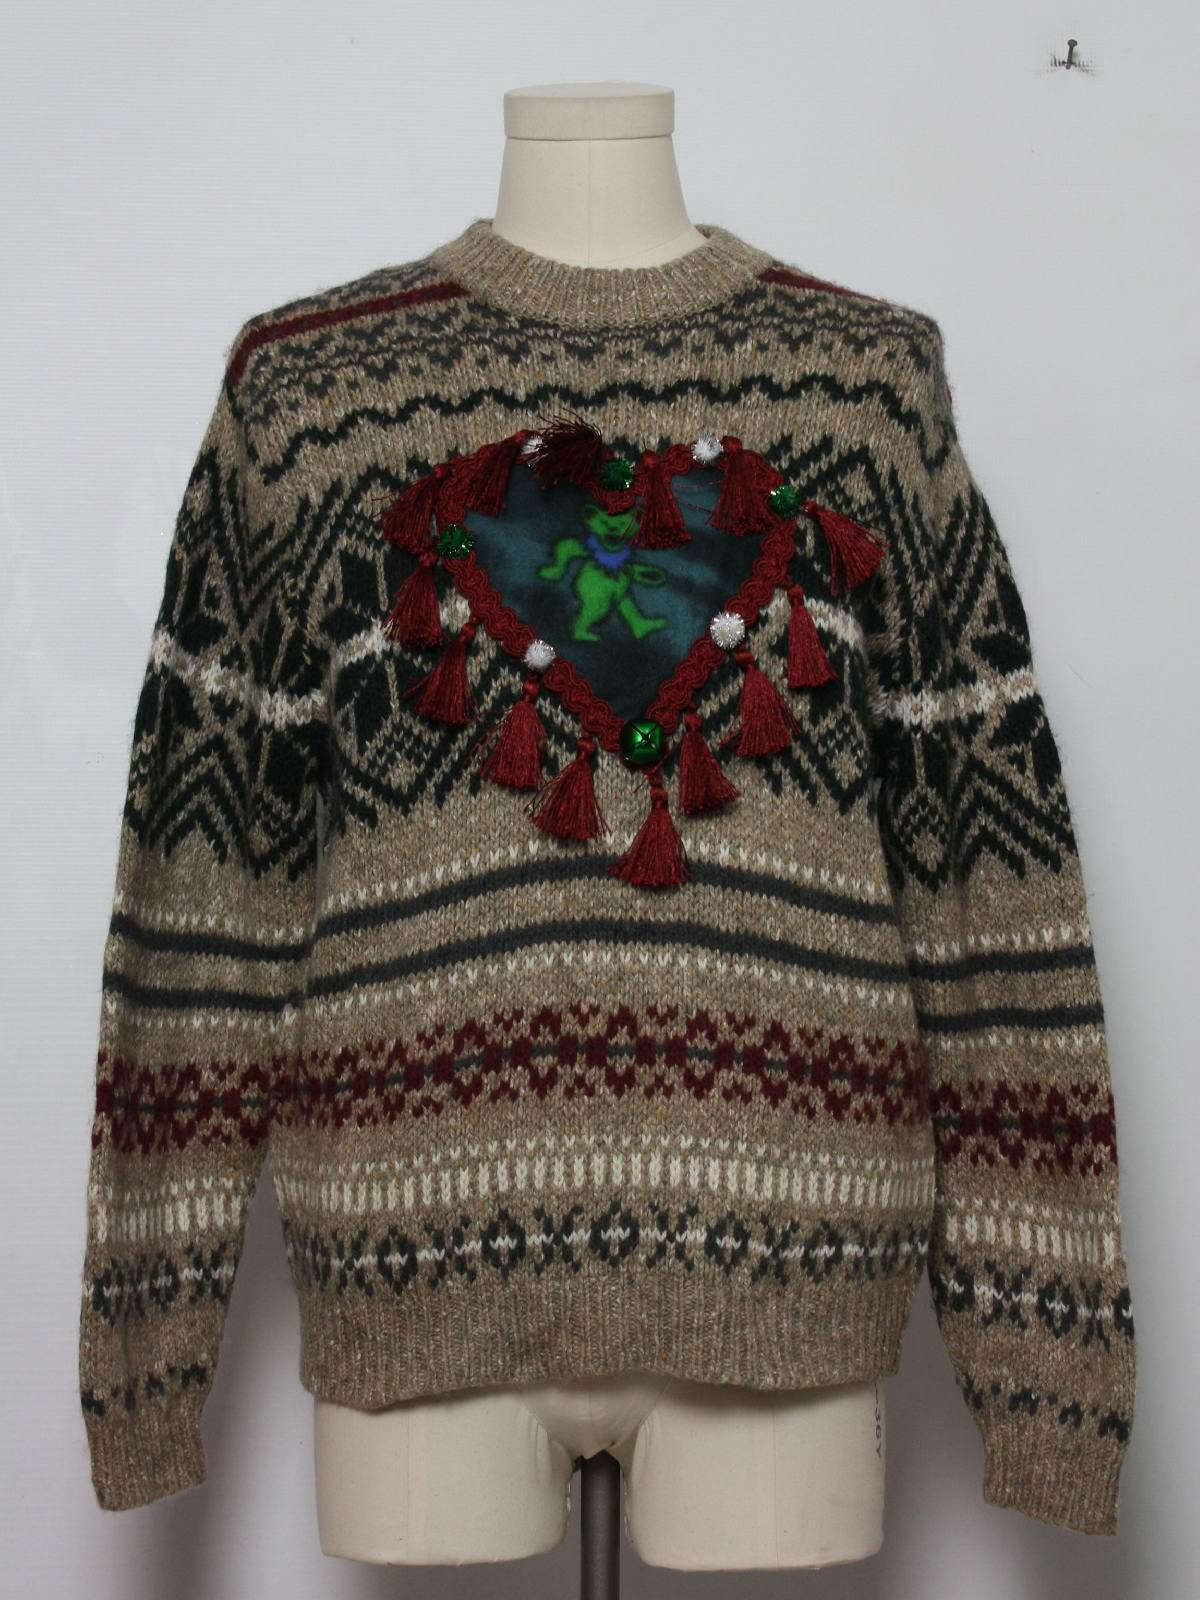 Grateful Dead Ugly Christmas Sweater: -Eddie Bauer- Unisex brown ...